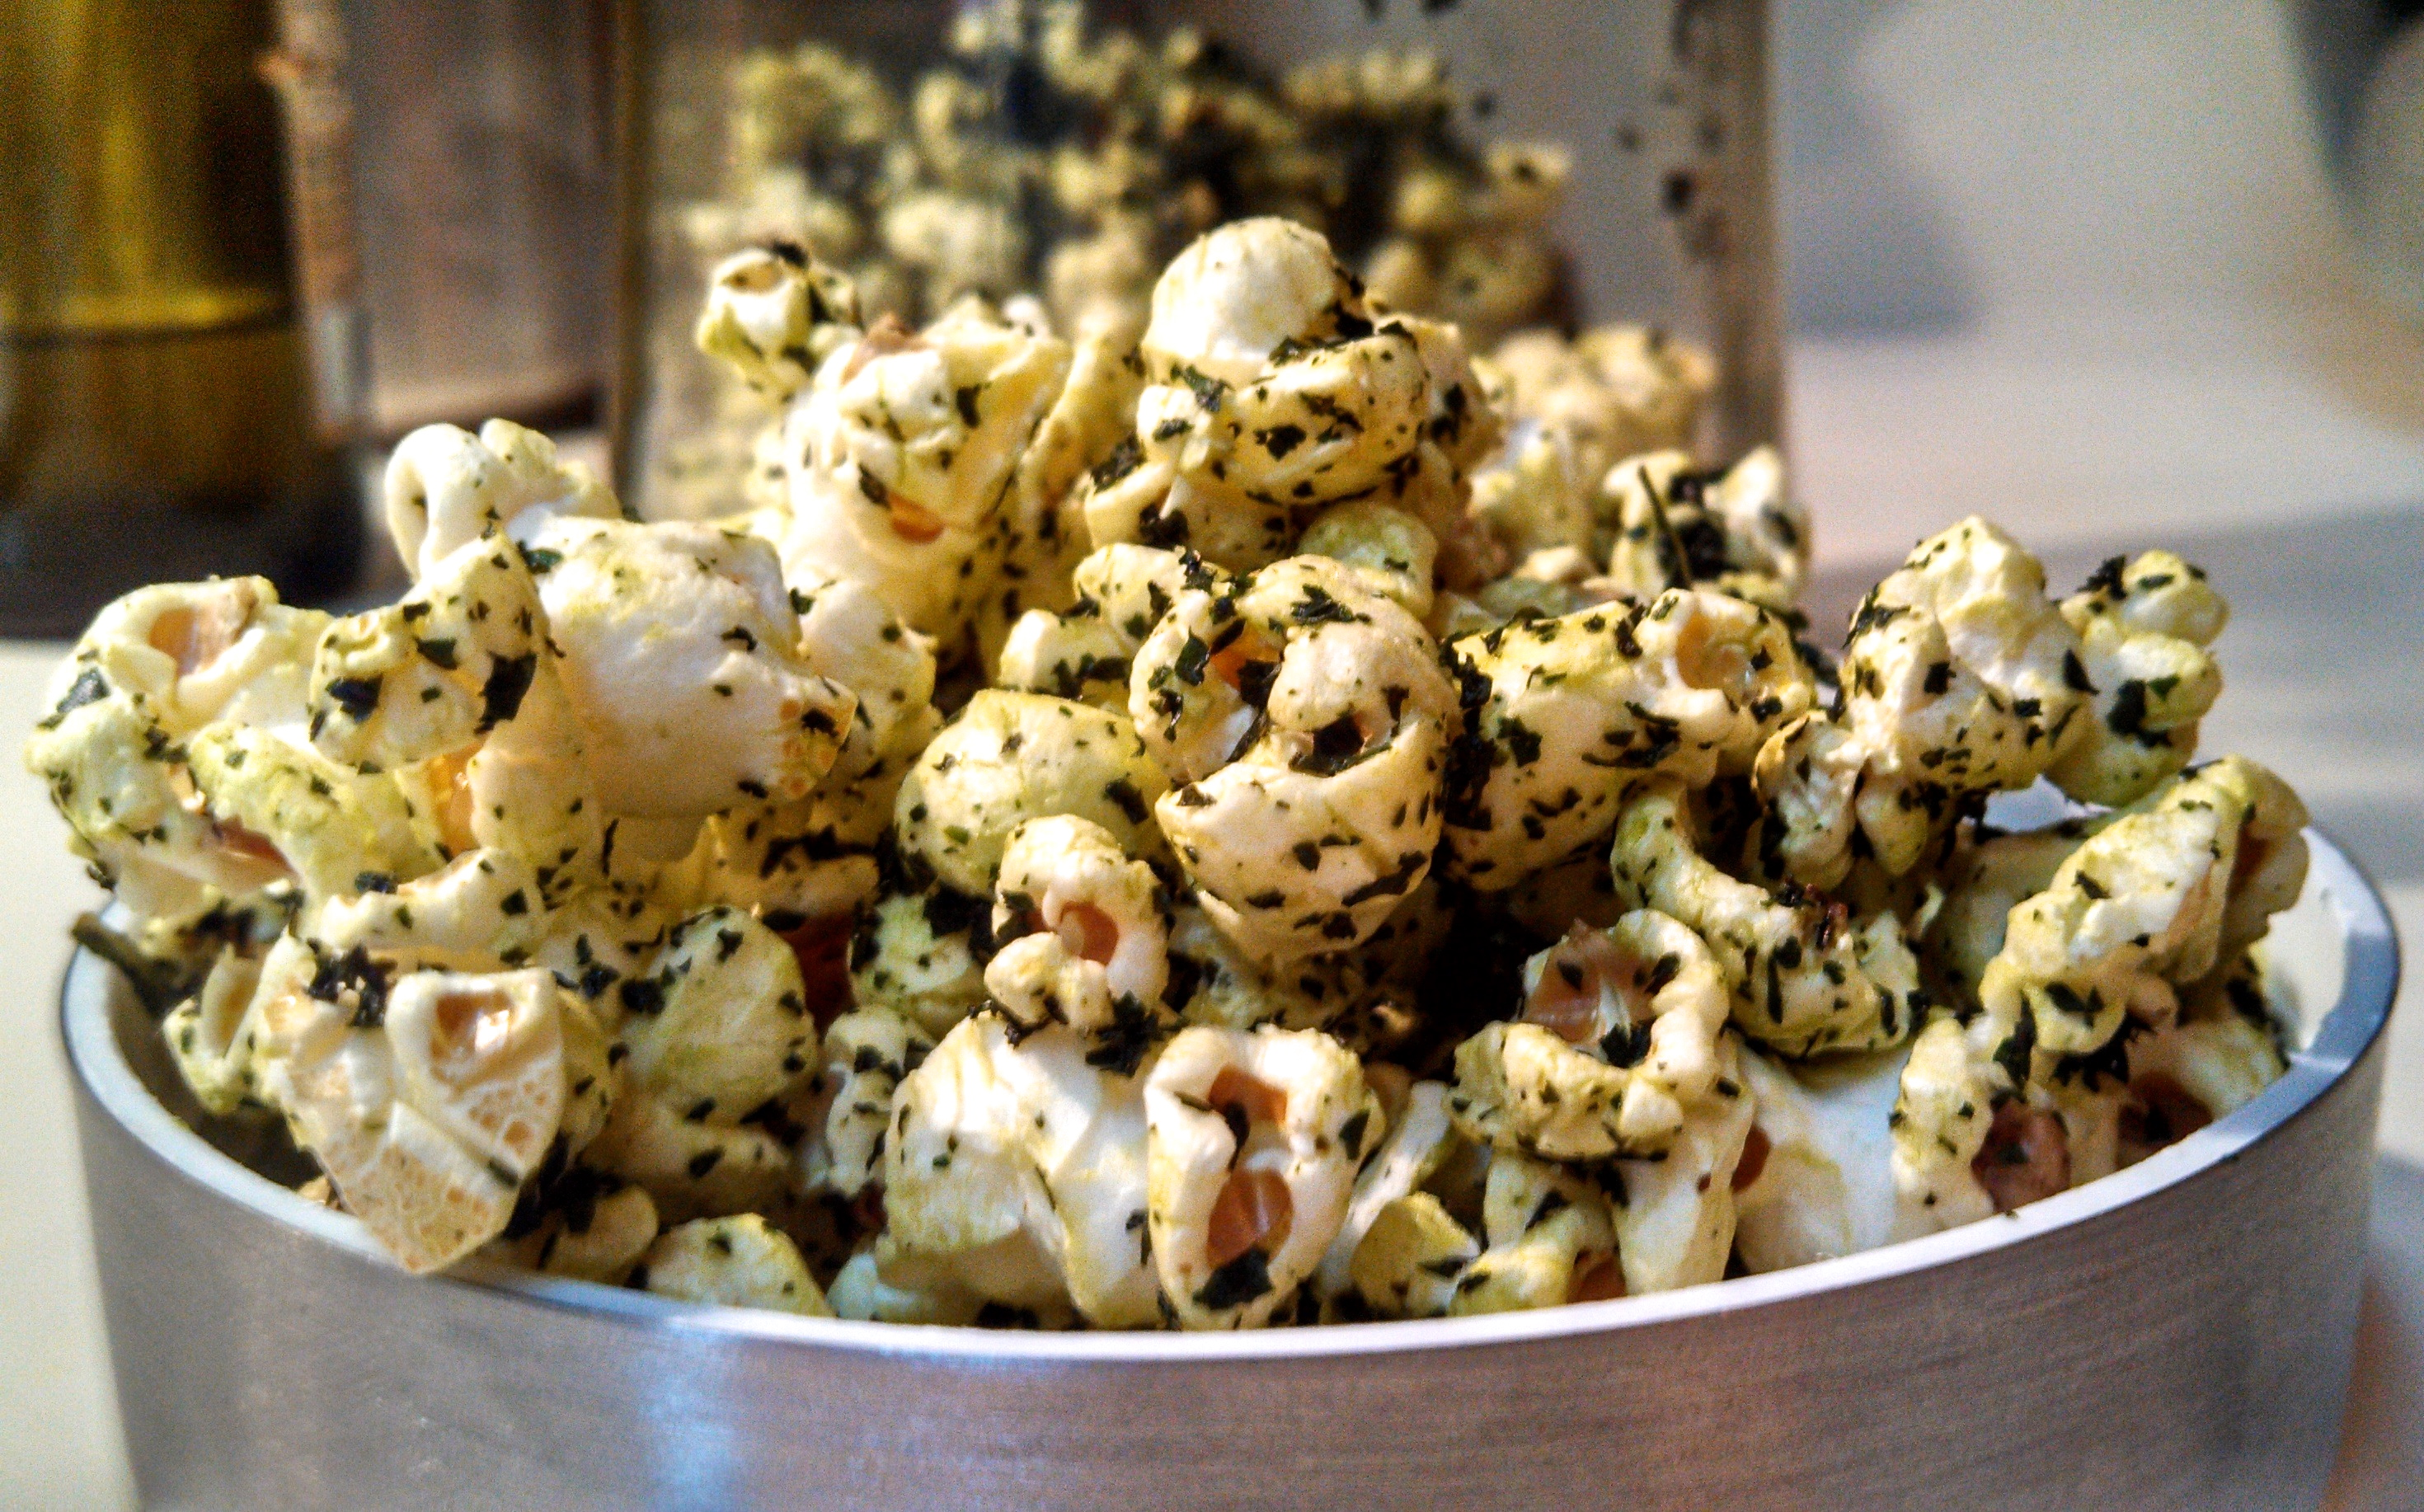 PopKale - How to make seasoned popcorn with truffle oil infused kale chip crumbles